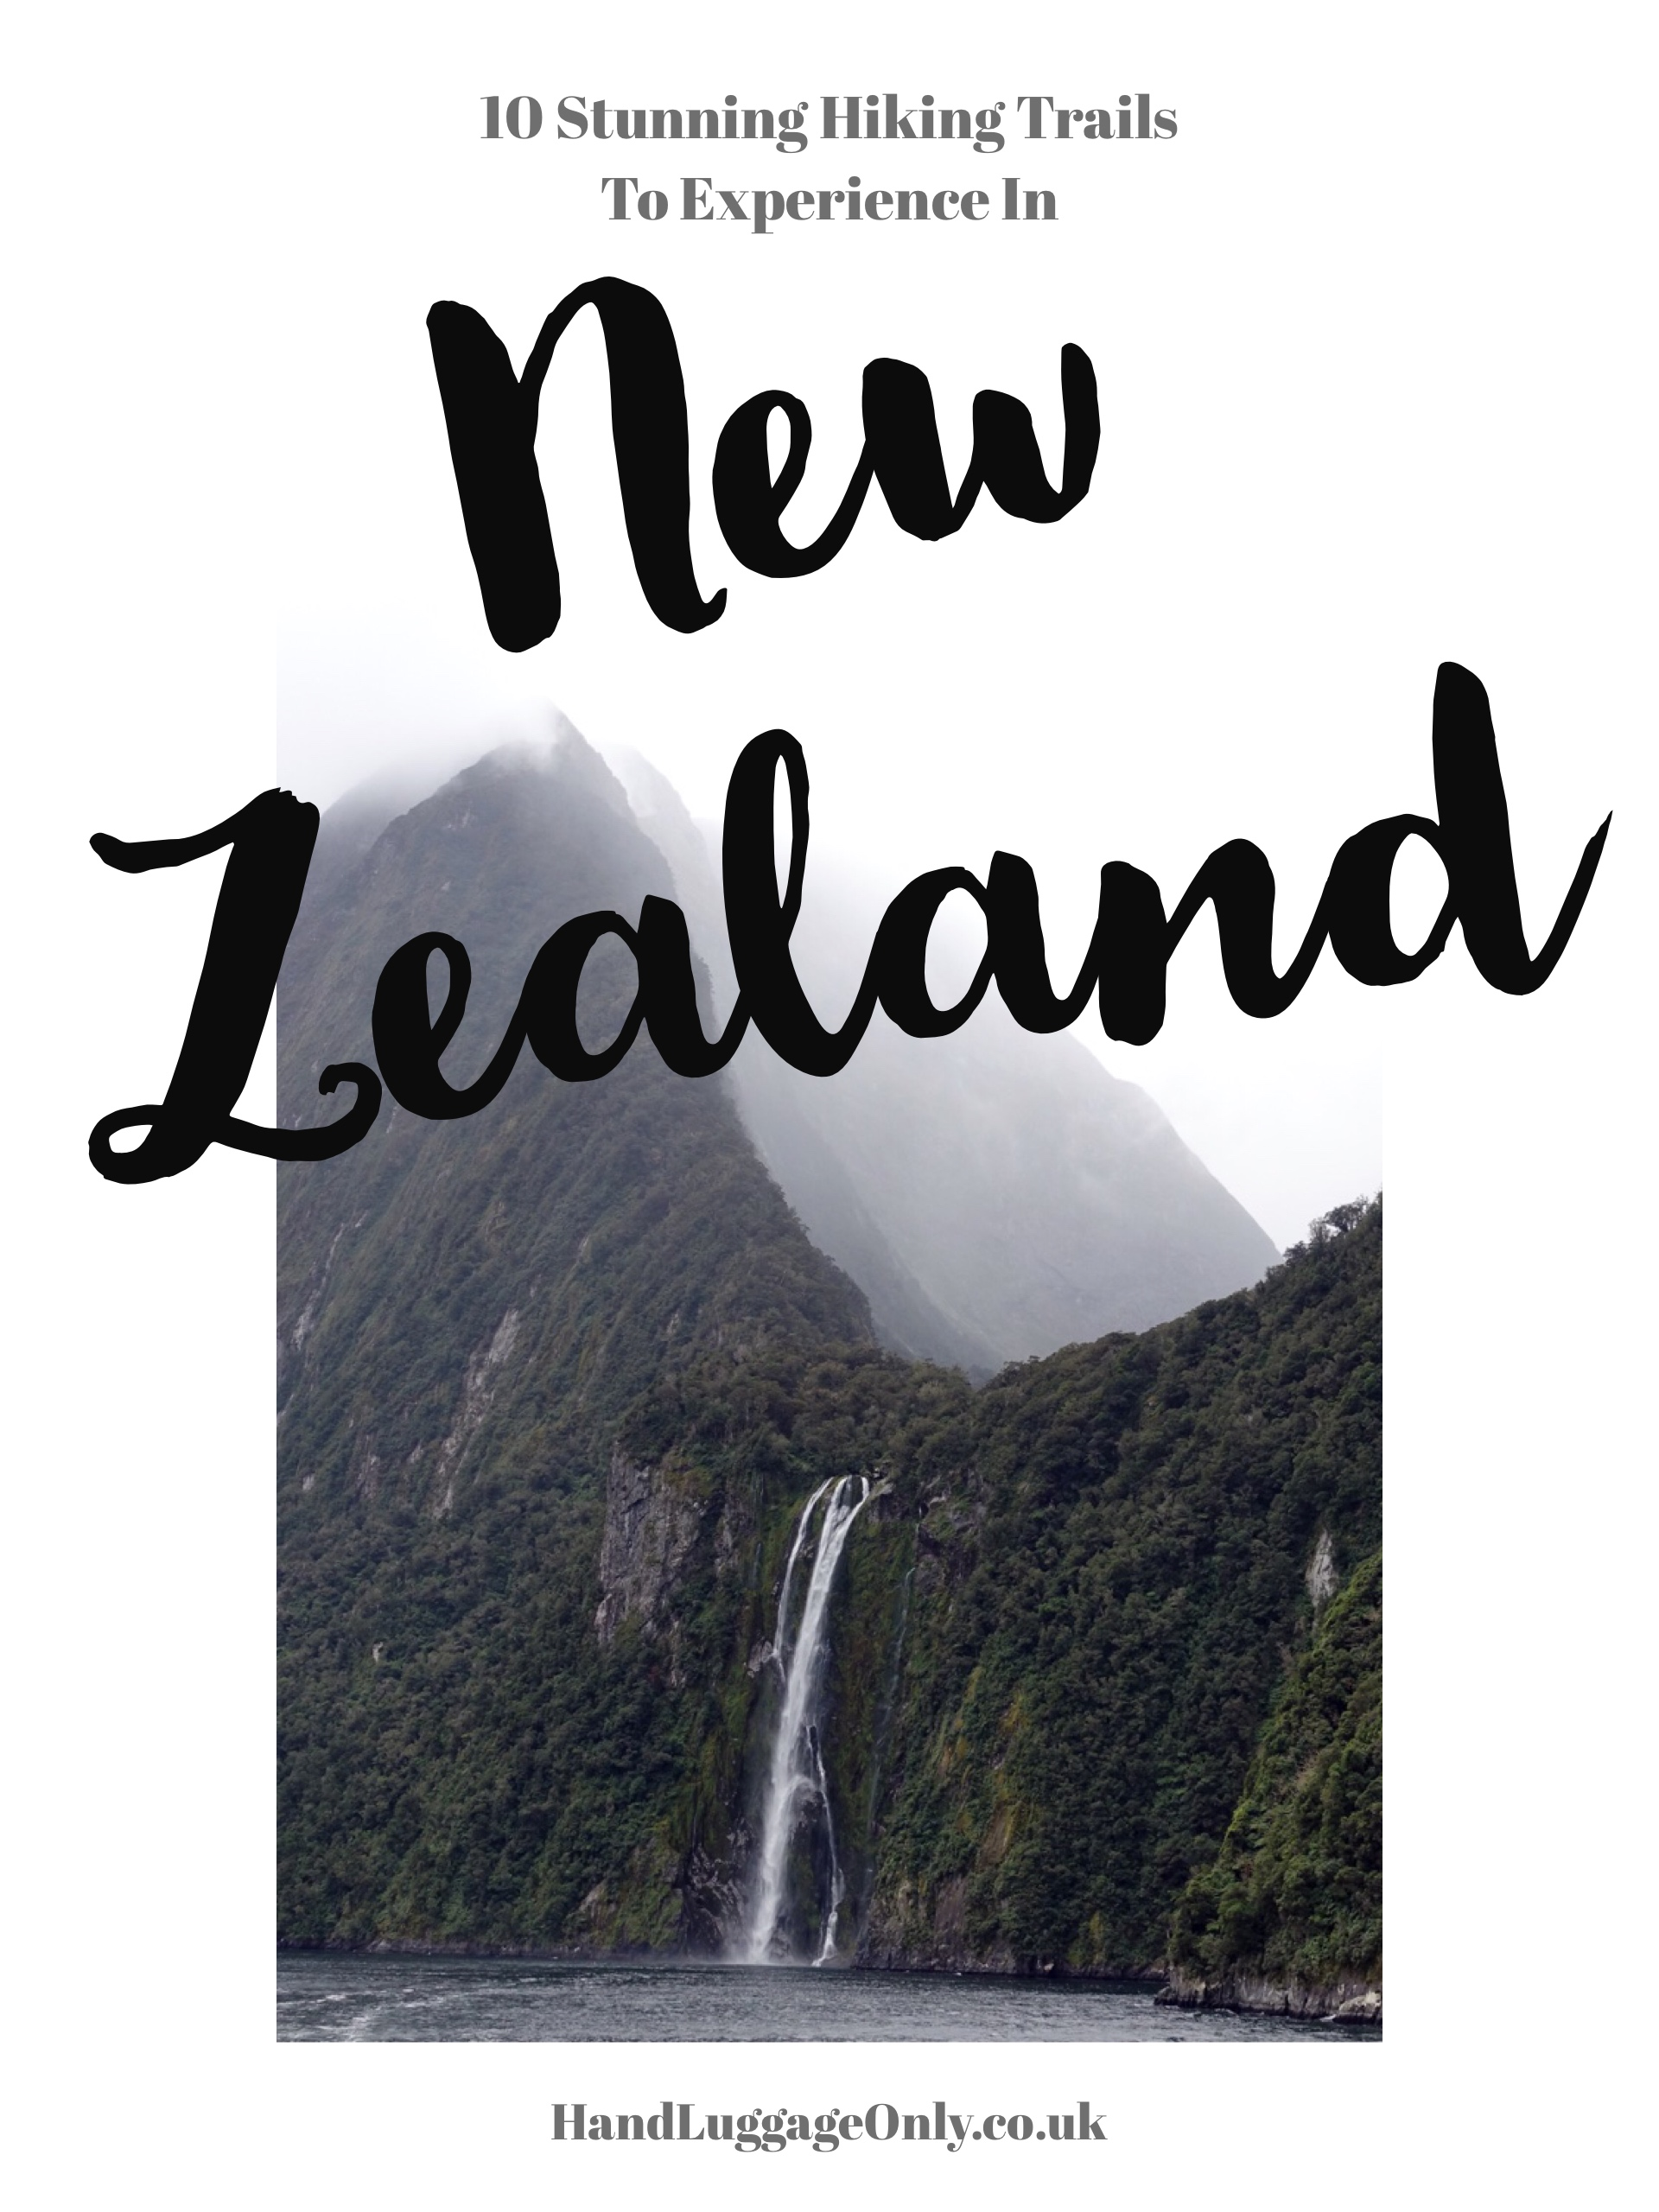 10 Absolutely Beautiful Hiking Trails You Have To Do In New Zealand (1)